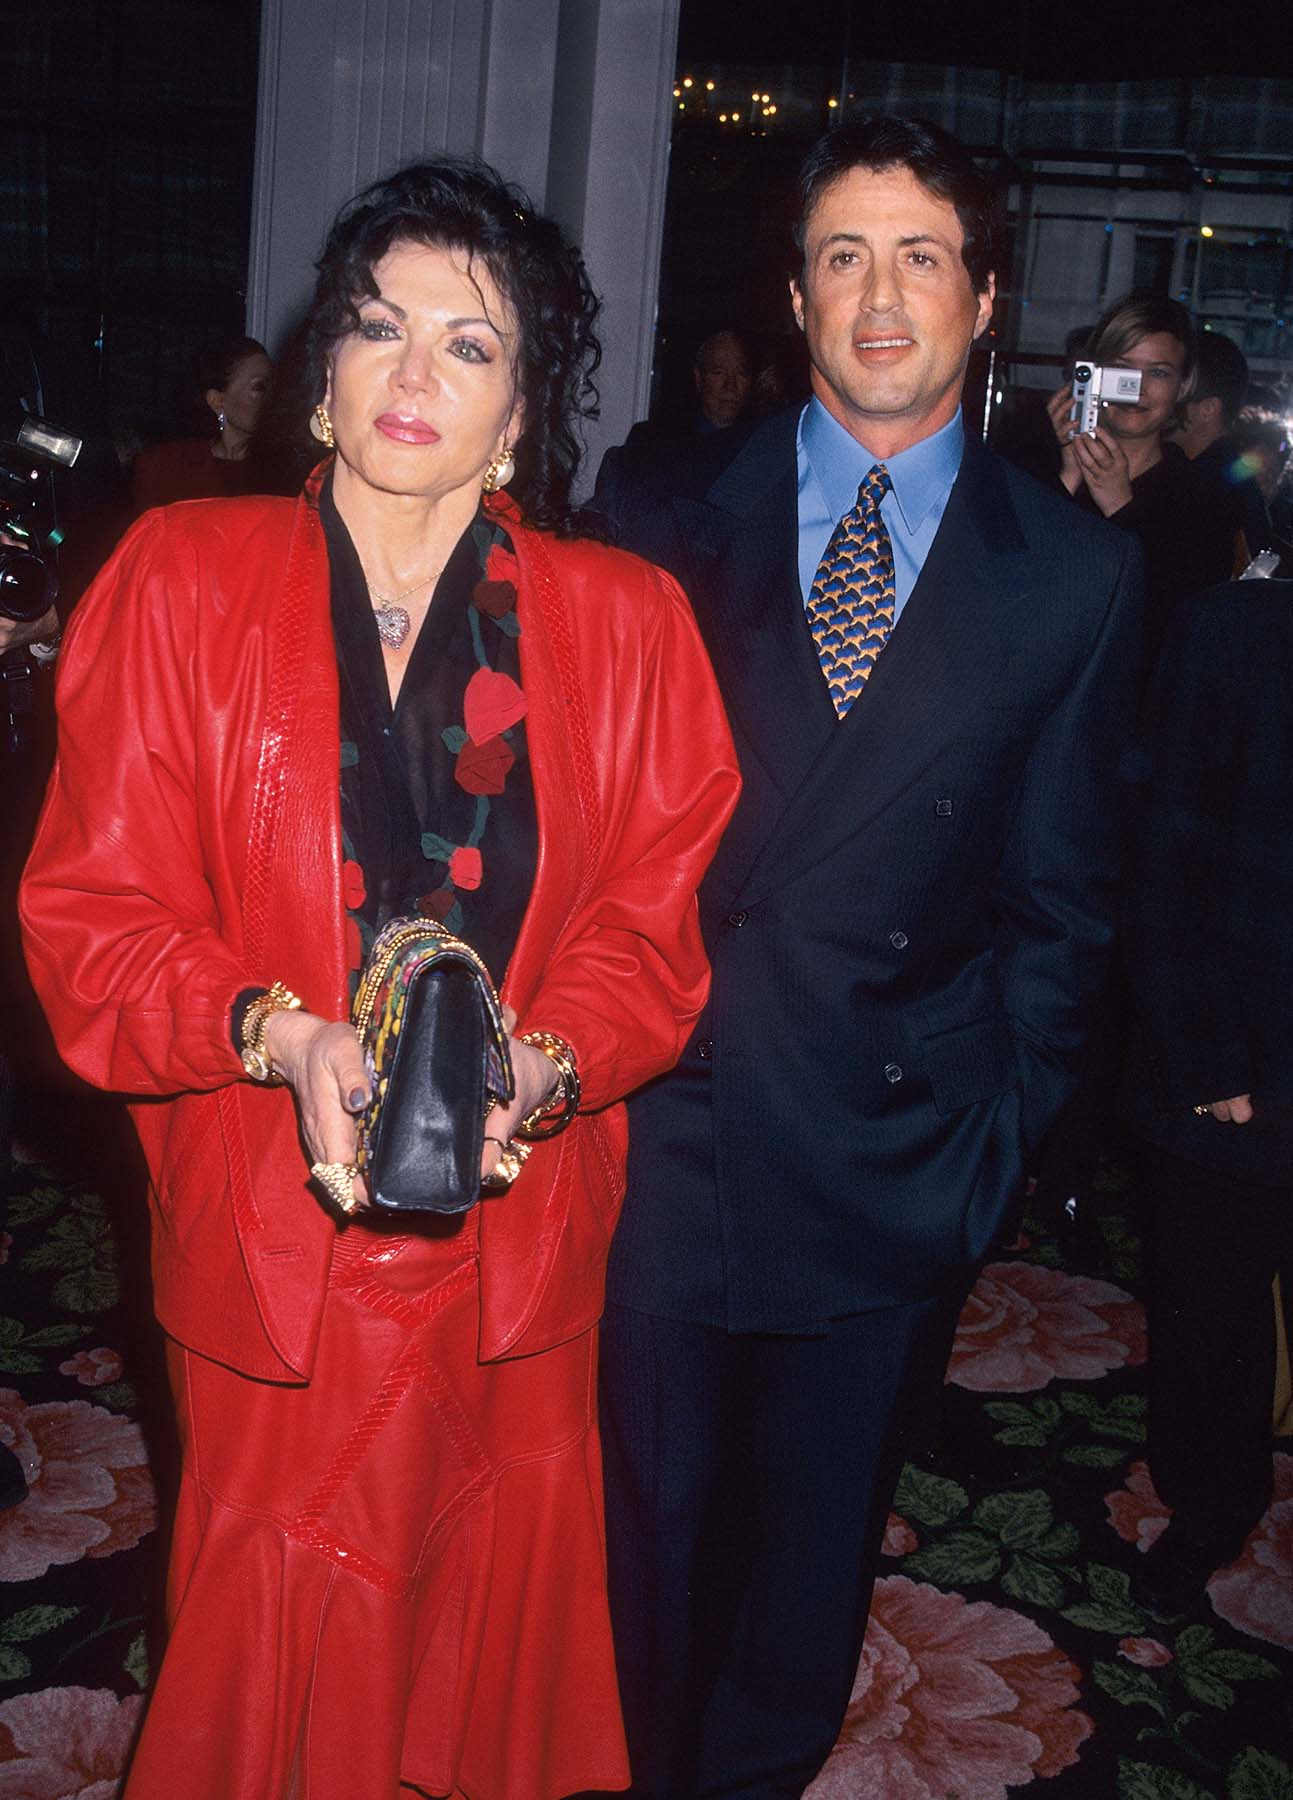 BEVERLY HILLS, CA - DECEMBER 14:   Actor Sylvester Stallone and mother Jackie Stallone attend the Hollywood Women's Press Club's 57th Annual Golden Apple Awards on December 14, 1997 at the Beverly Hilton Hotel in Beverly Hills, California. (Photo by Ron Galella, Ltd./Ron Galella Collection via Getty Images)